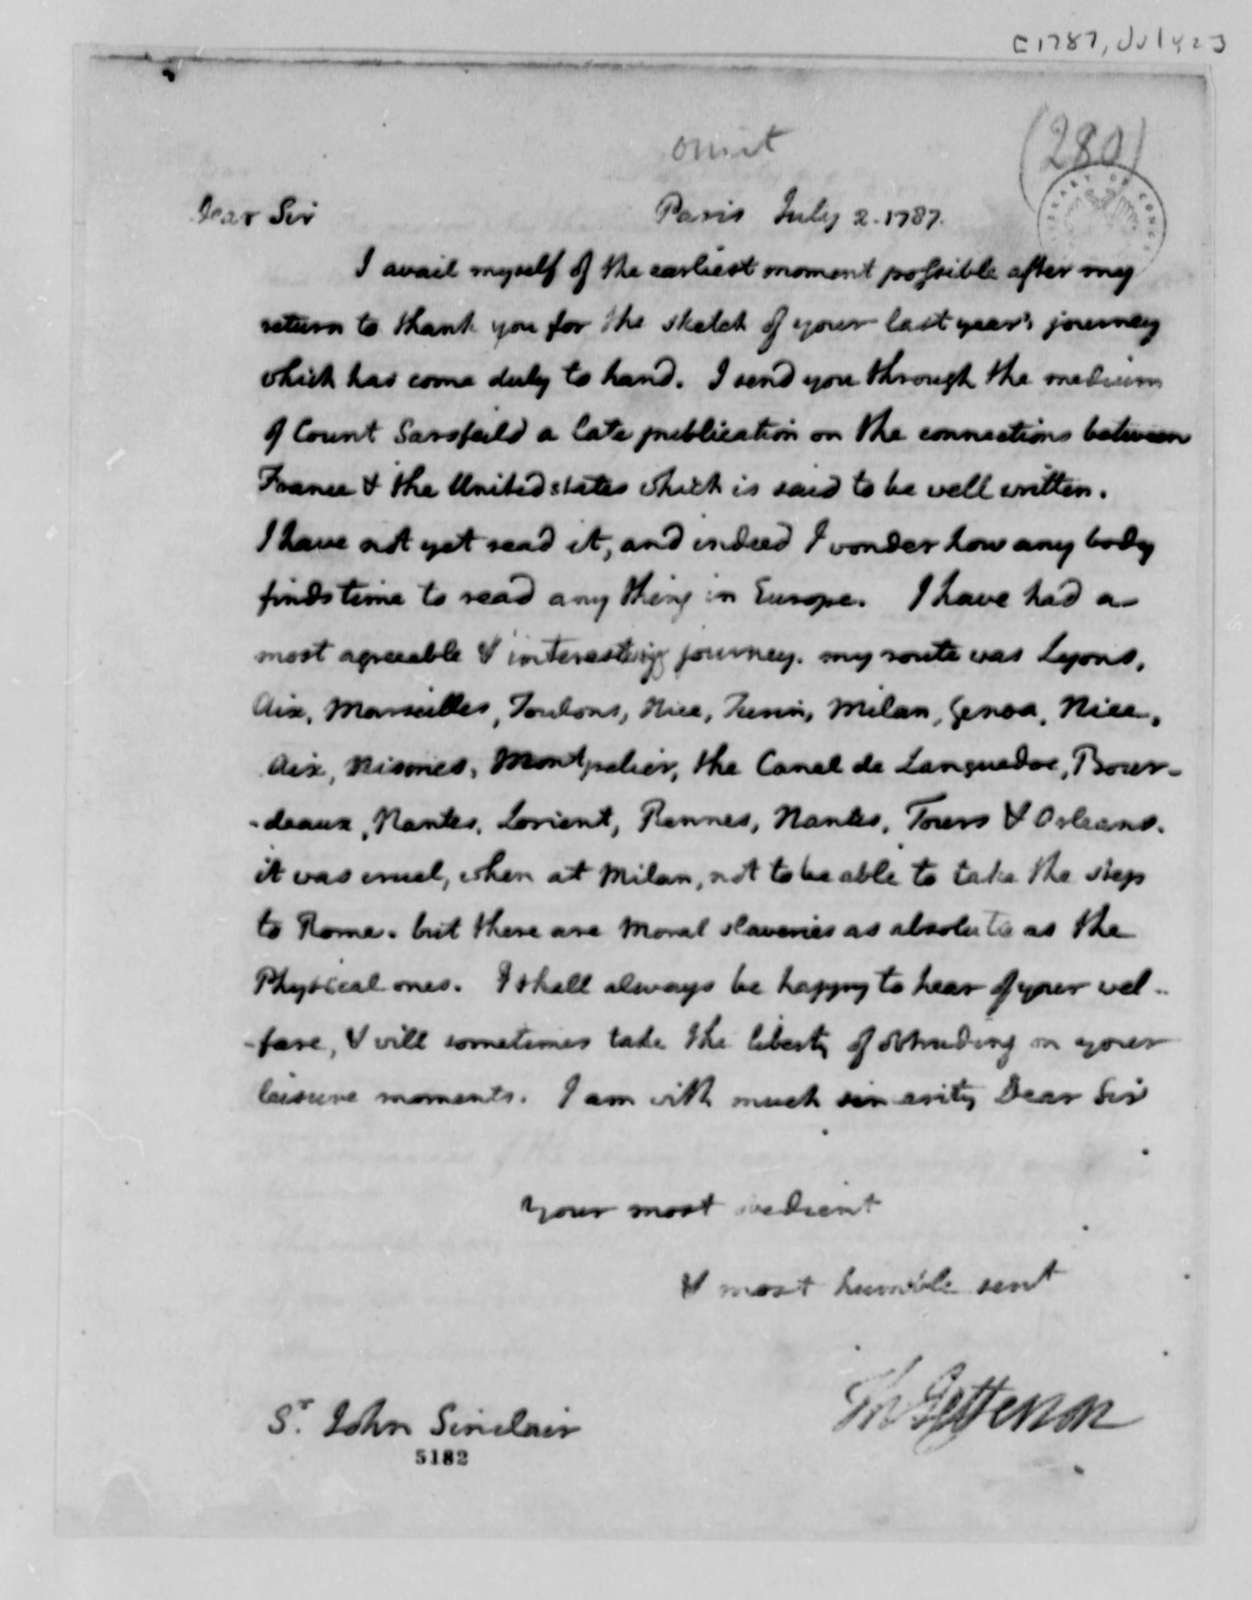 Thomas Jefferson to John Sinclair, July 2, 1787